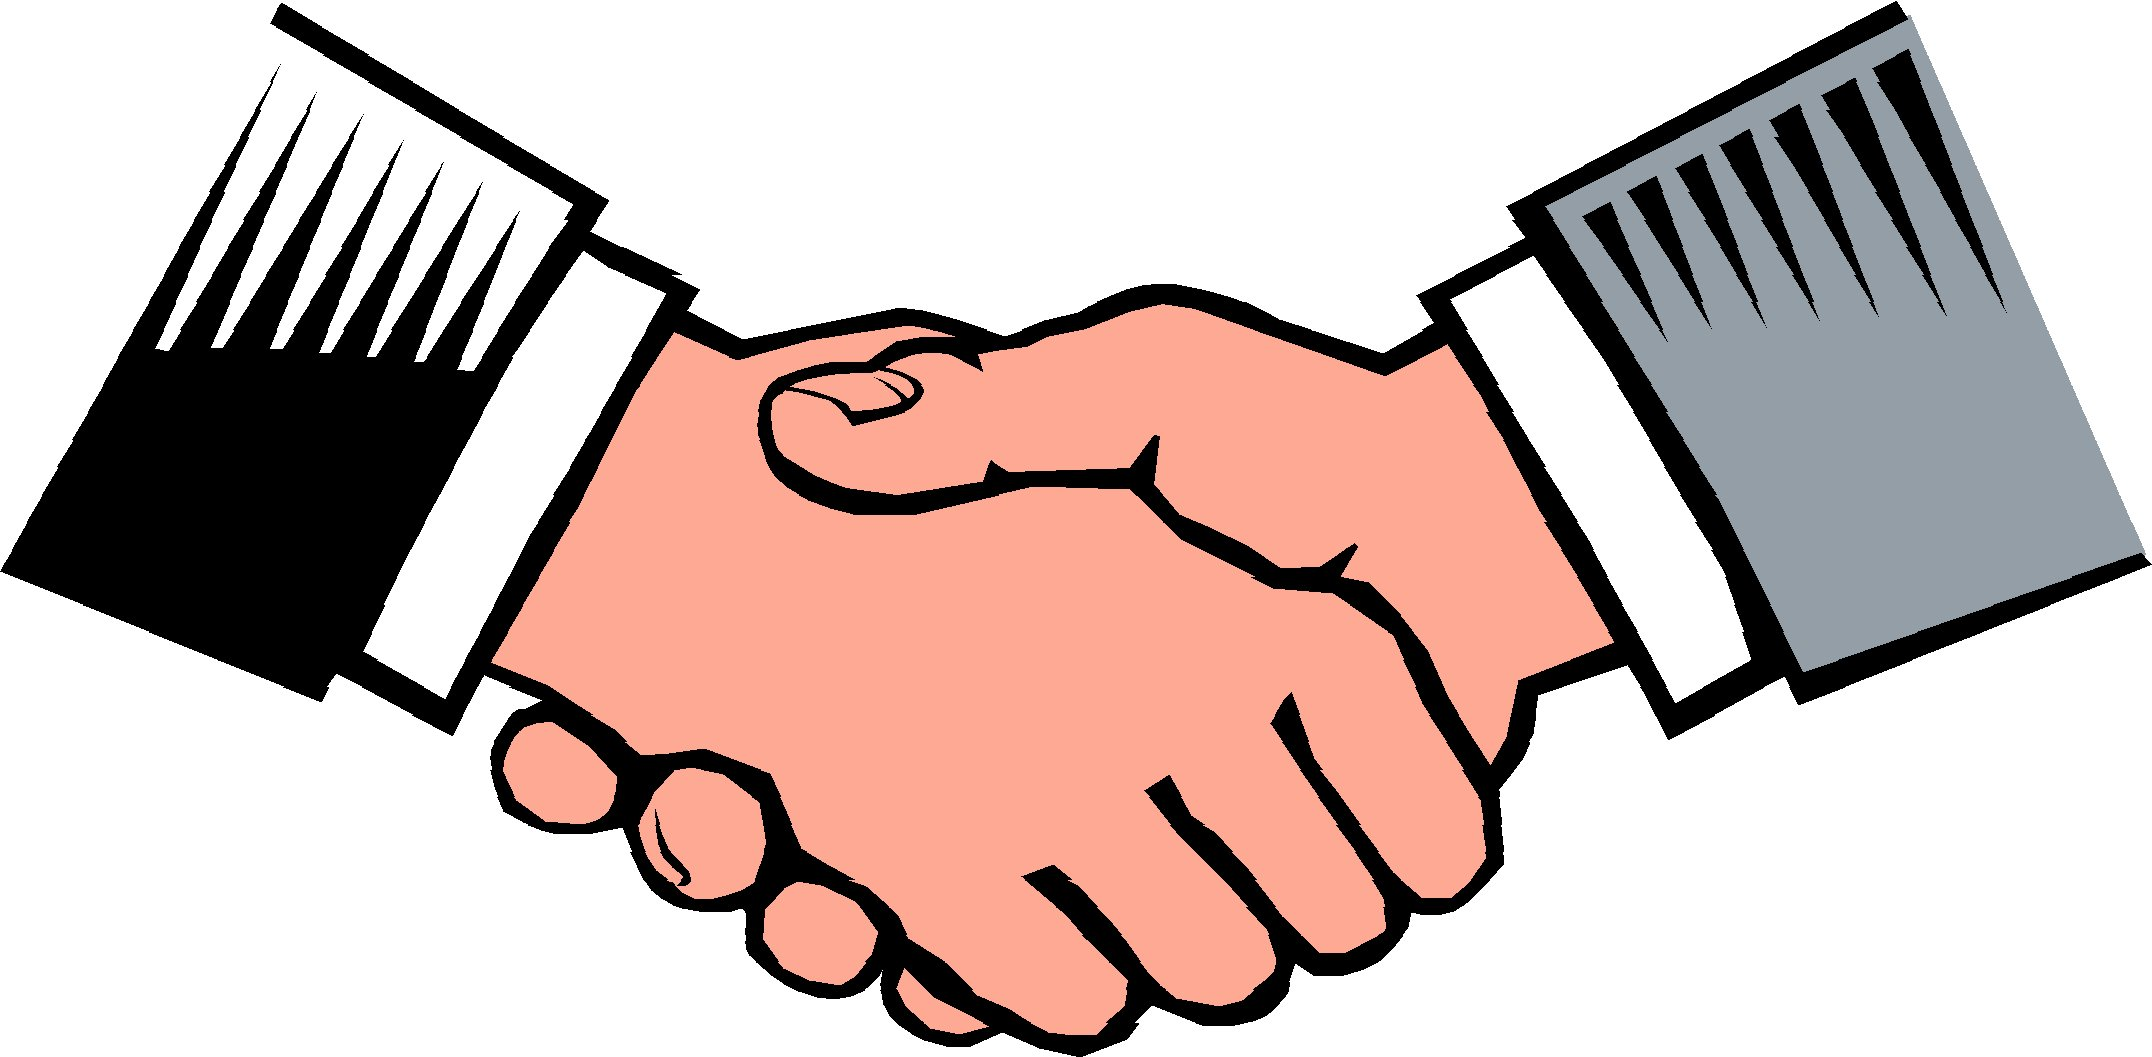 Shaking Hands Clip Art Free - Cliparts.co